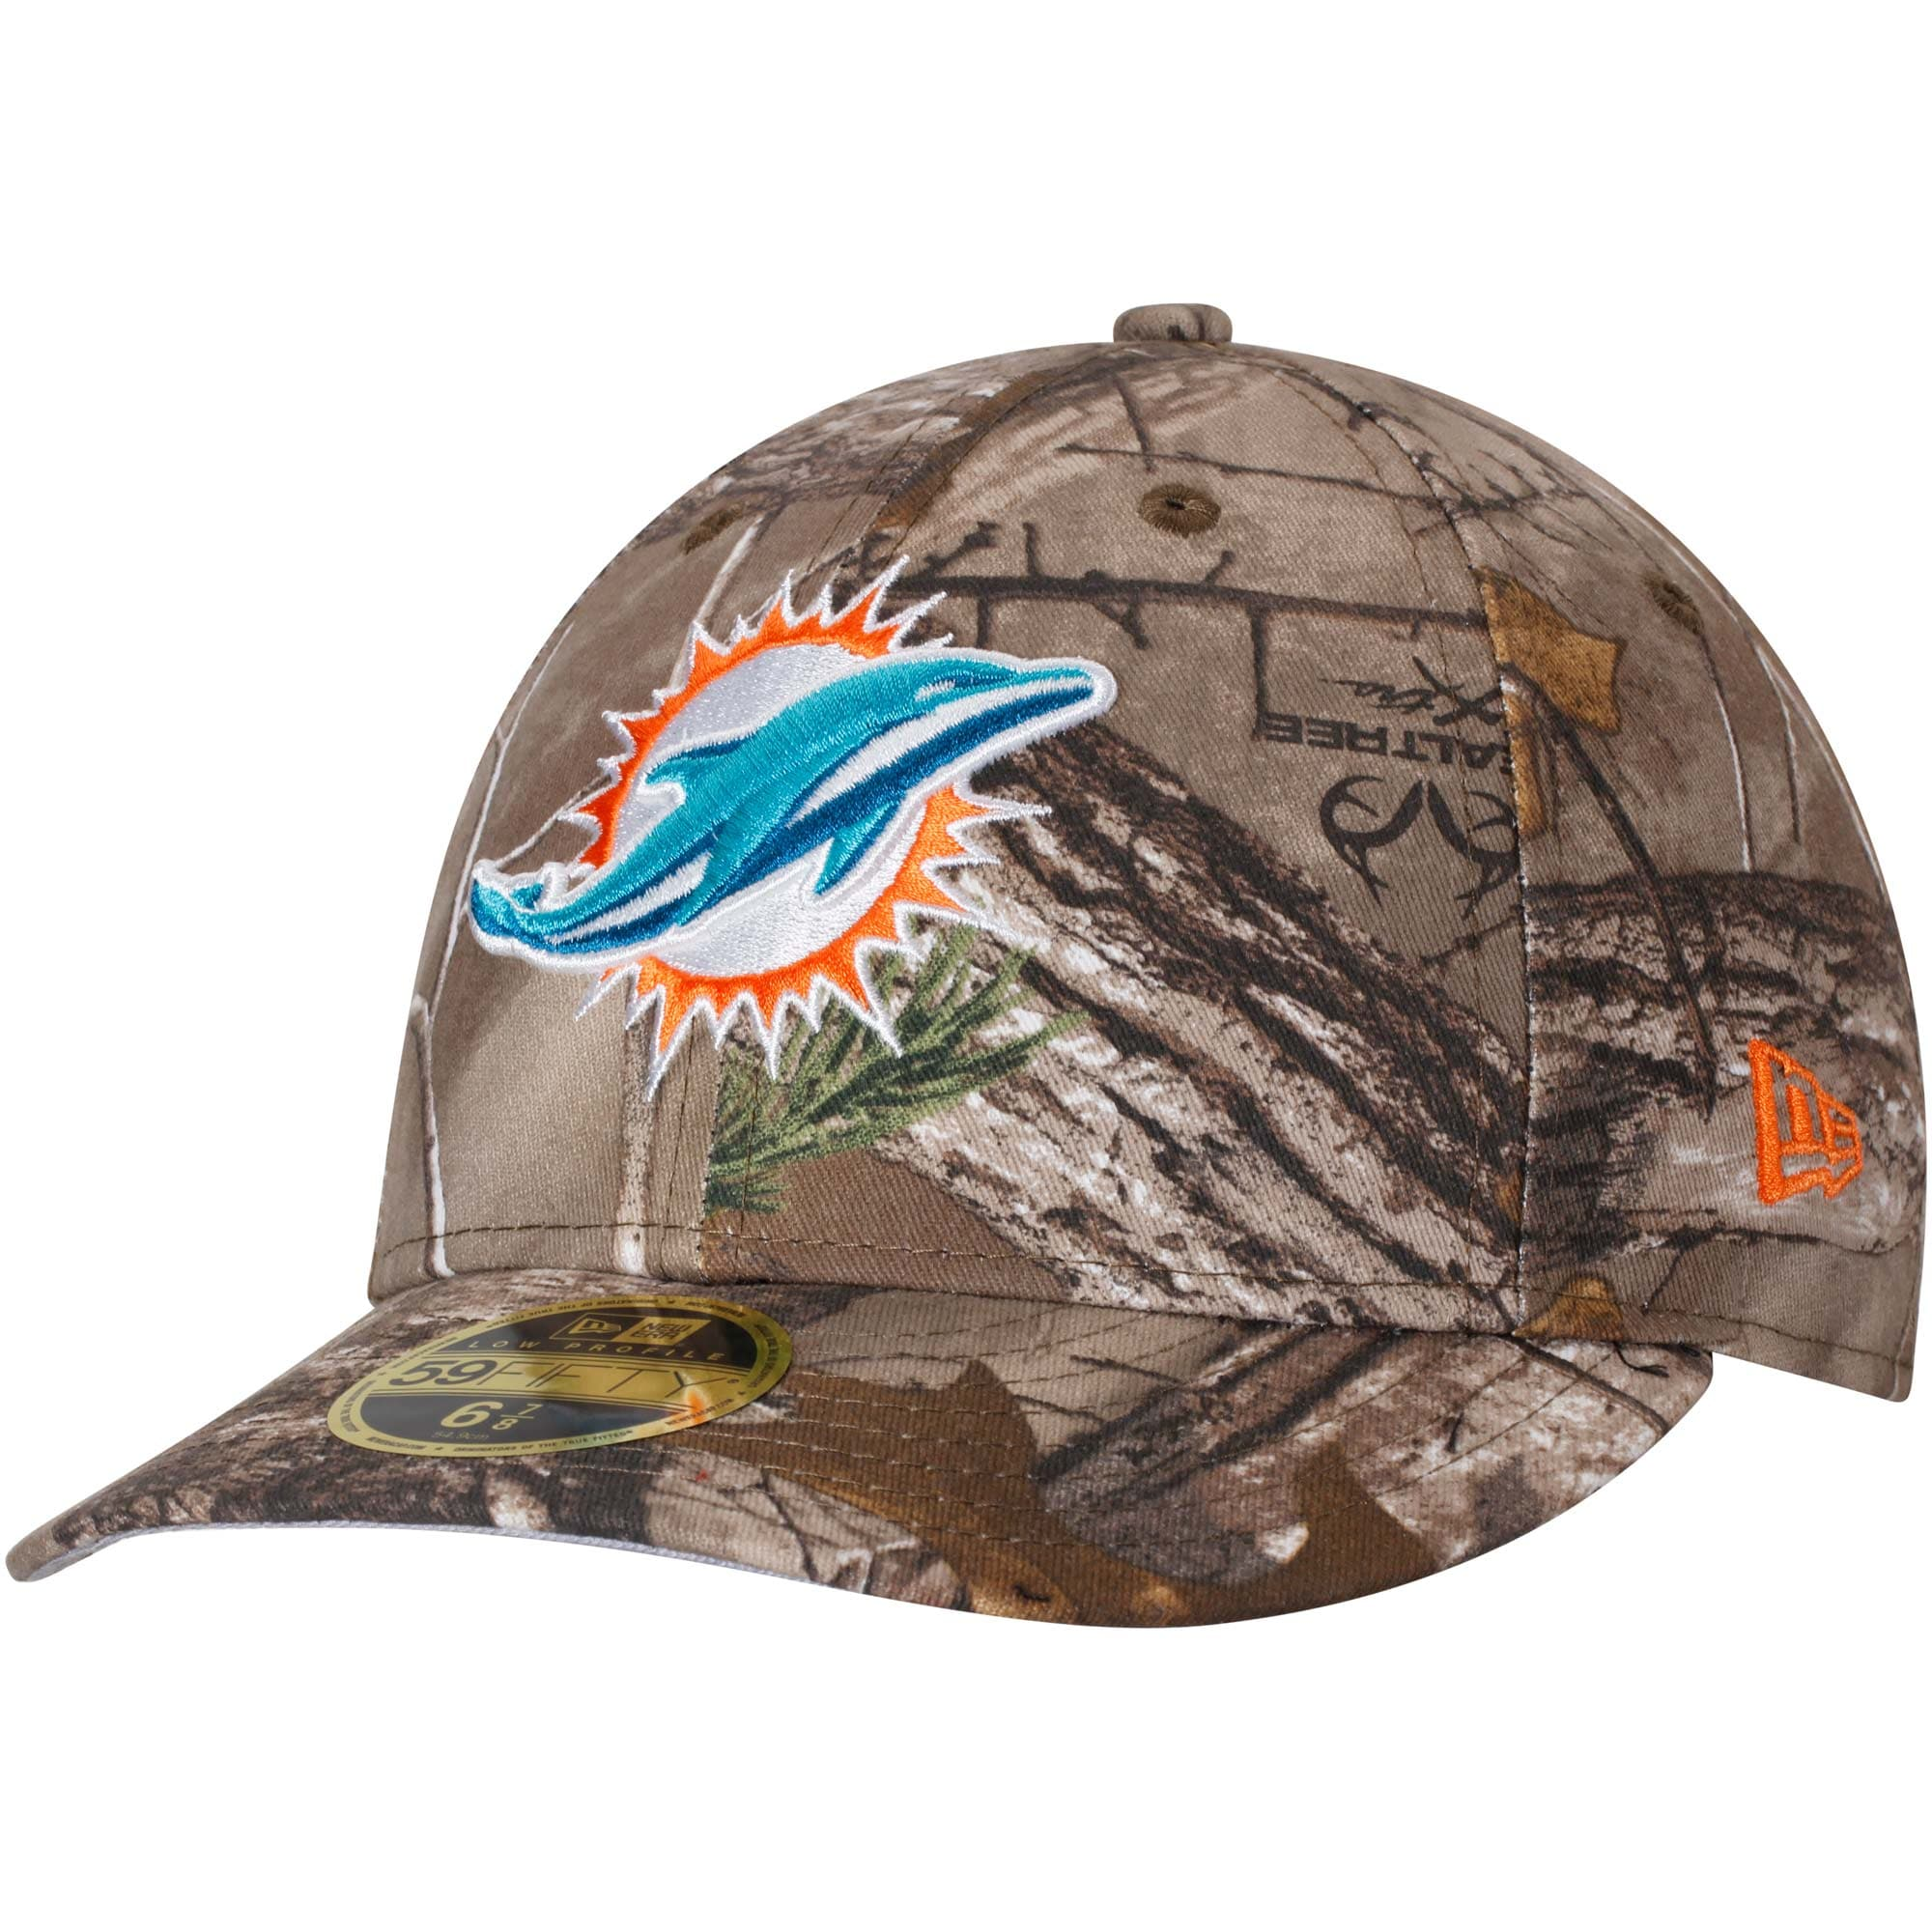 Miami Dolphins New Era Low Profile 59FIFTY Hat - Realtree Camo